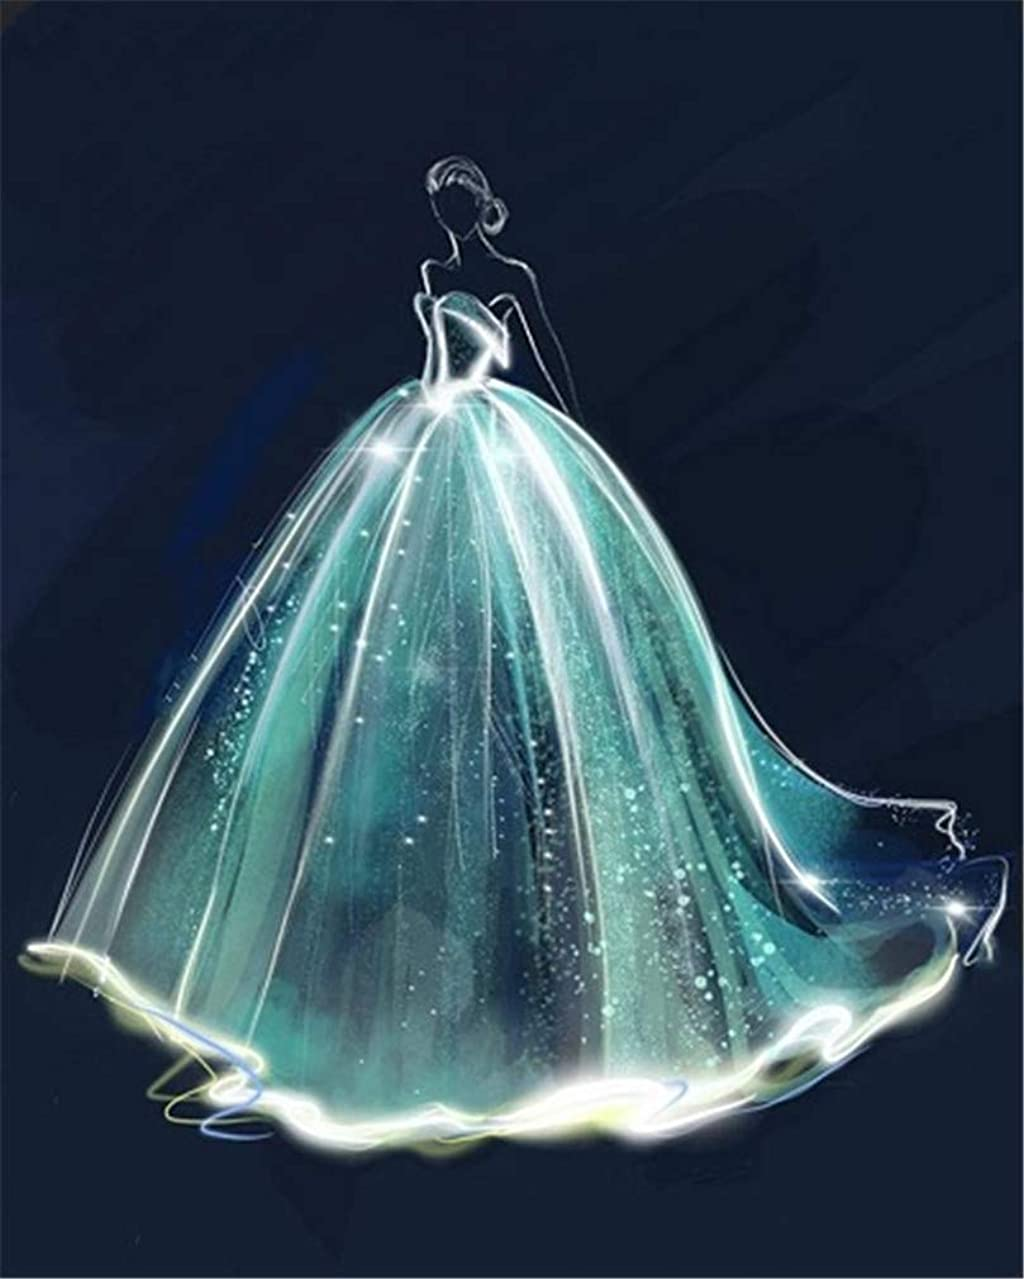 YEESAM ART DIY Paint by Numbers for Adults Beginner Kids, Fairytale Dreamy Glowing Wedding Dress 16x20 inch Linen Canvas Acrylic Stress Less Number Painting Gifts (Dress, Without Frame)